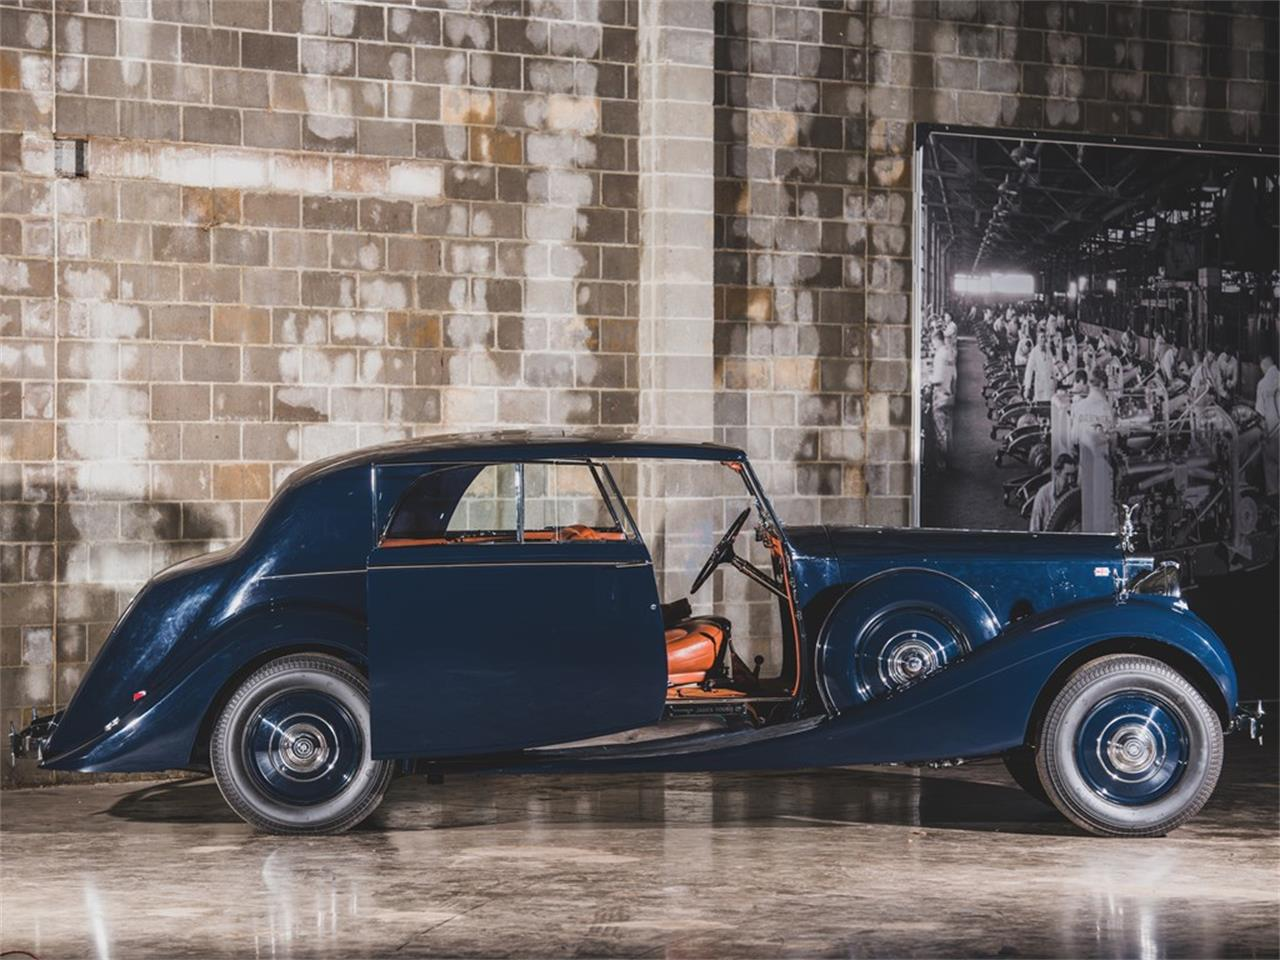 Large Picture of Classic 1938 Rolls-Royce Phantom III located in St Louis Missouri Auction Vehicle Offered by RM Sotheby's - PPA4